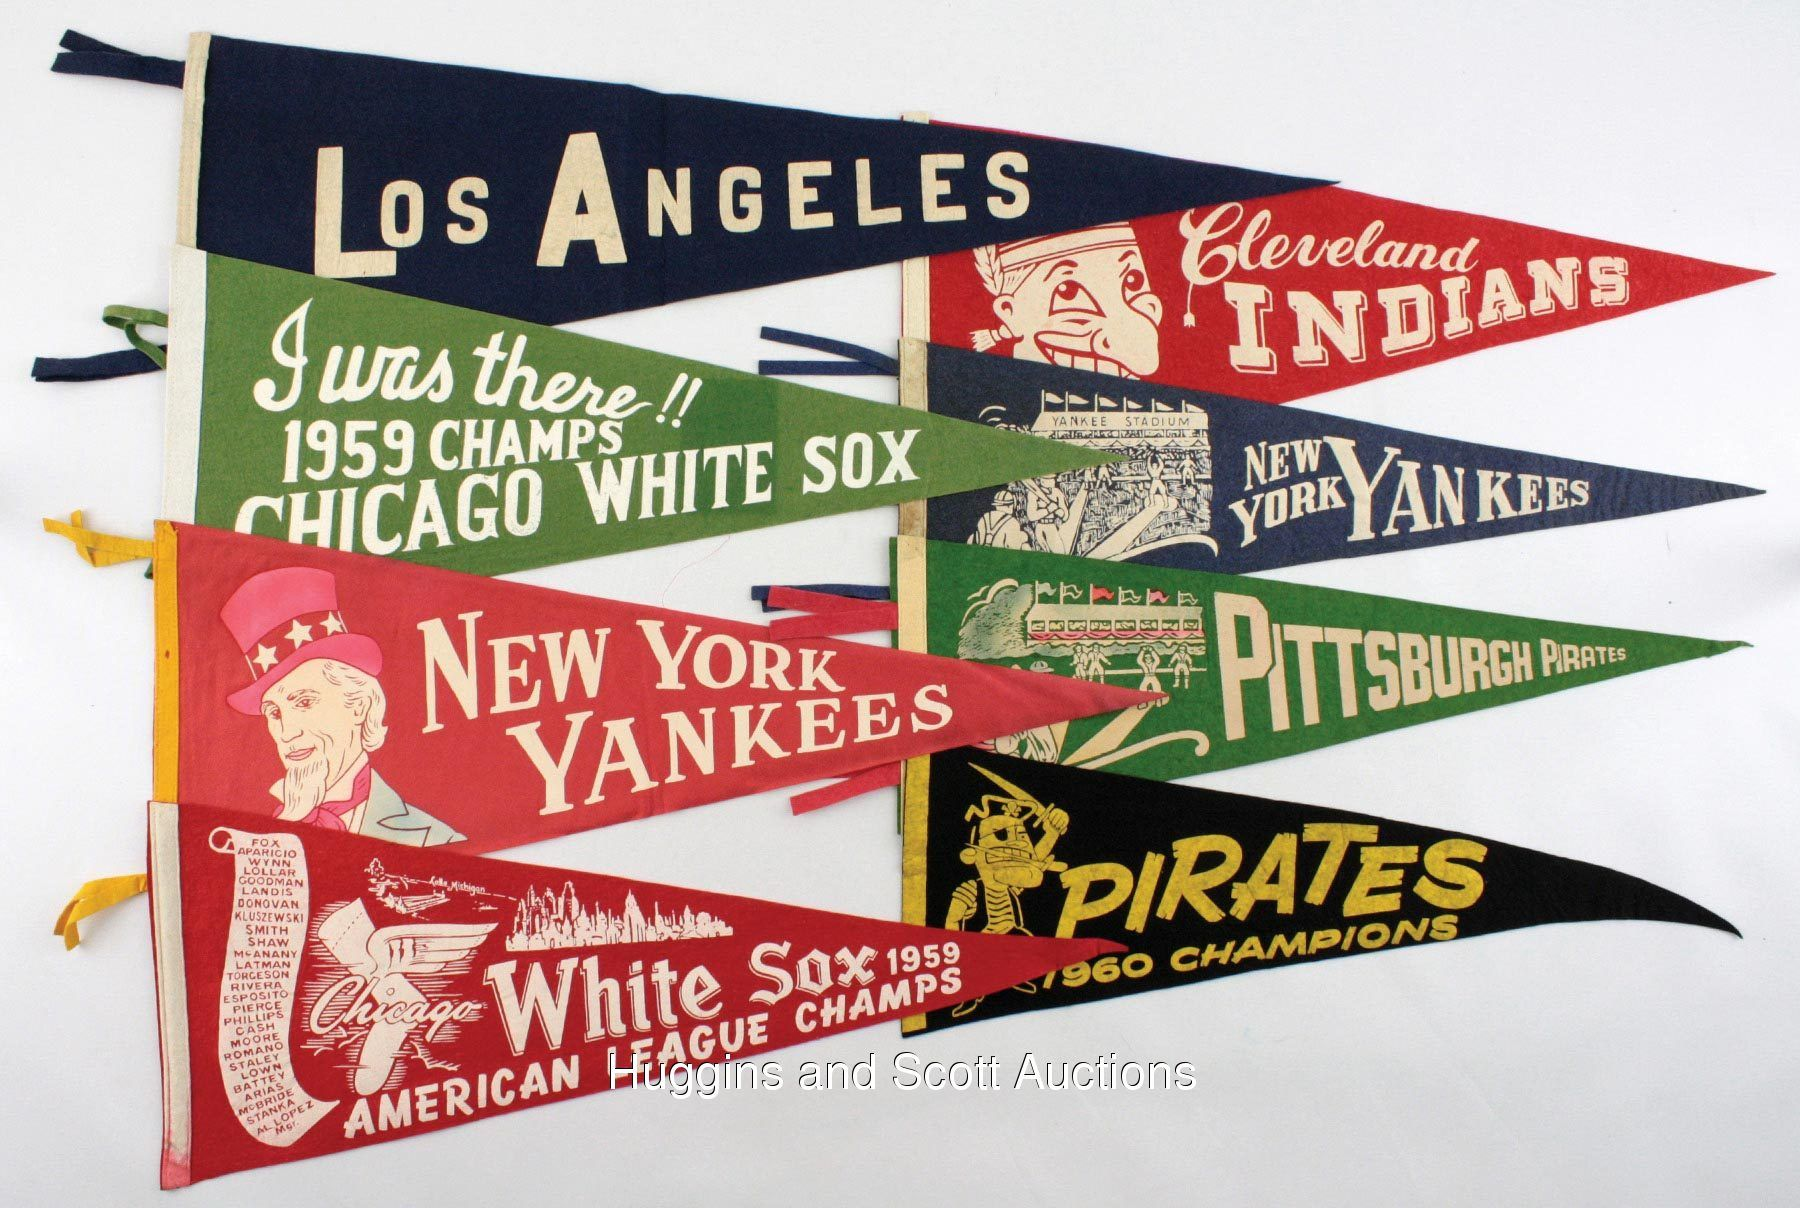 8 Vintage Baseball Pennants With Very Rare 1930s Yankee Stadium Pennant Baseball Pennants Vintage Baseball Yankees